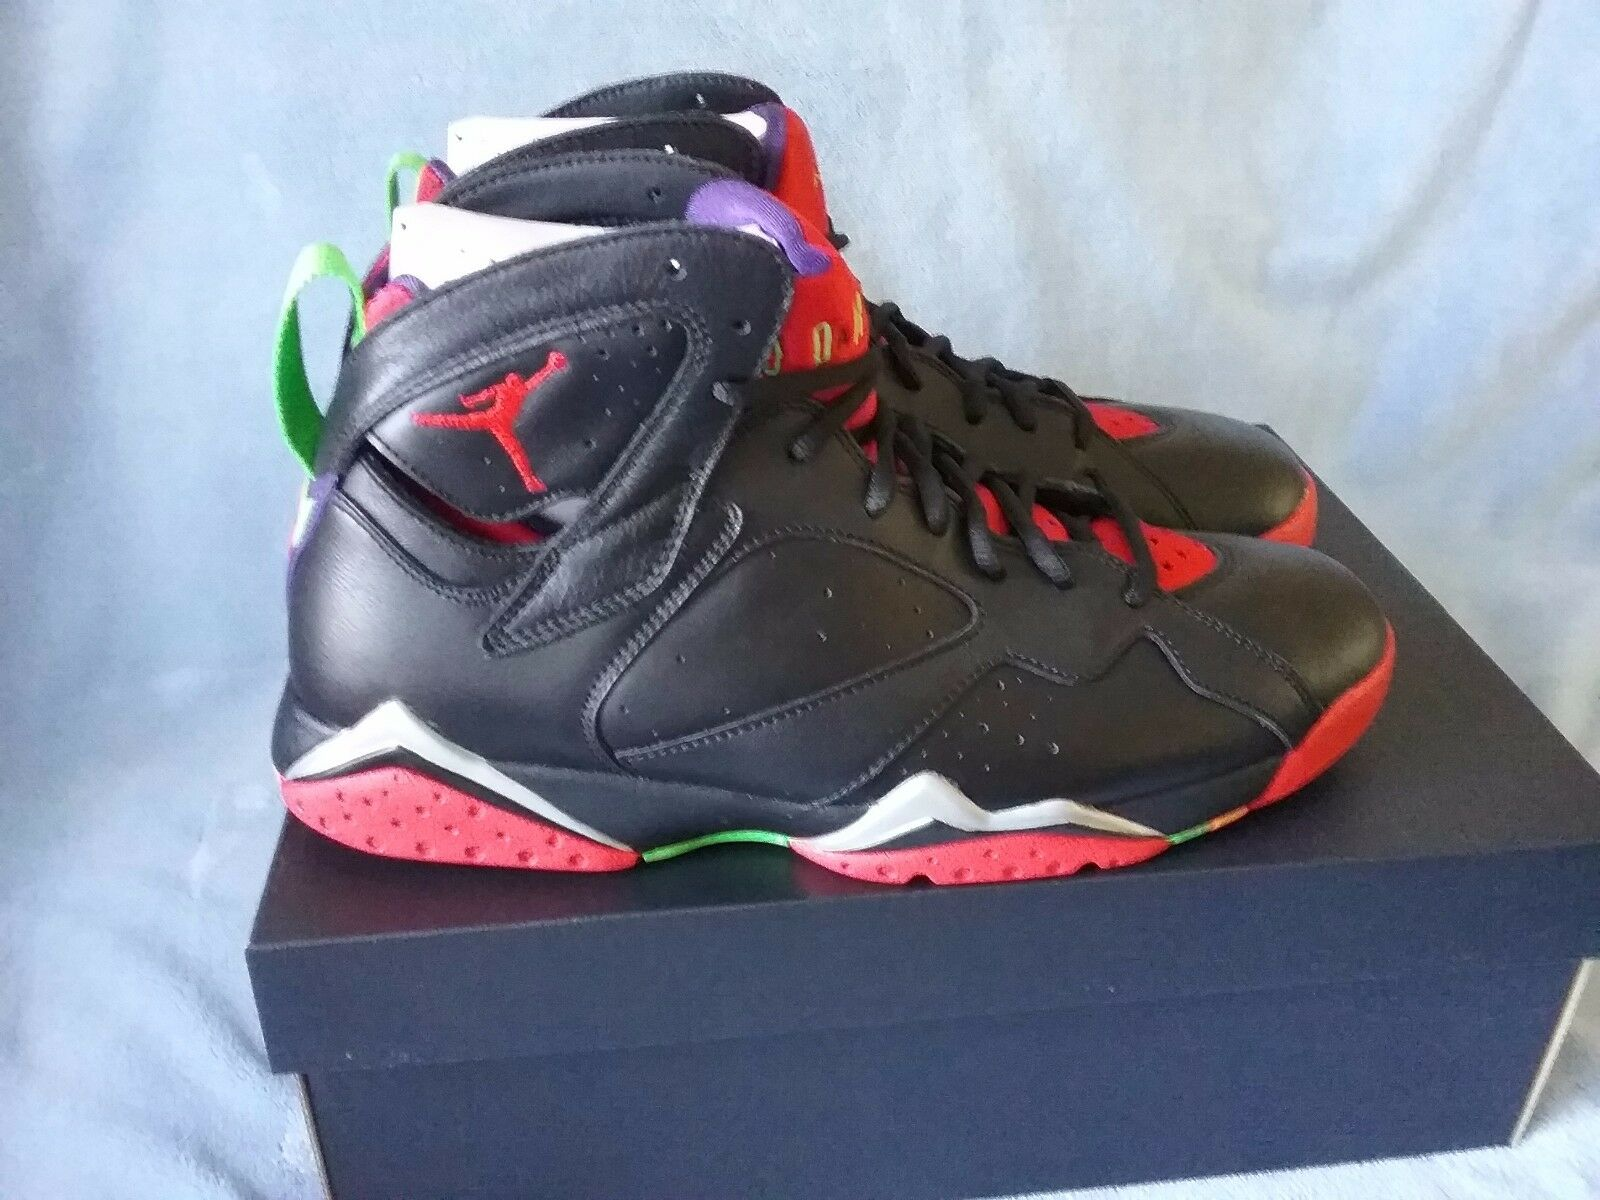 Para hombres Jordan Marvin 7 Retro Nike Air Marvin Jordan The Martian 304775029 10 58a74e